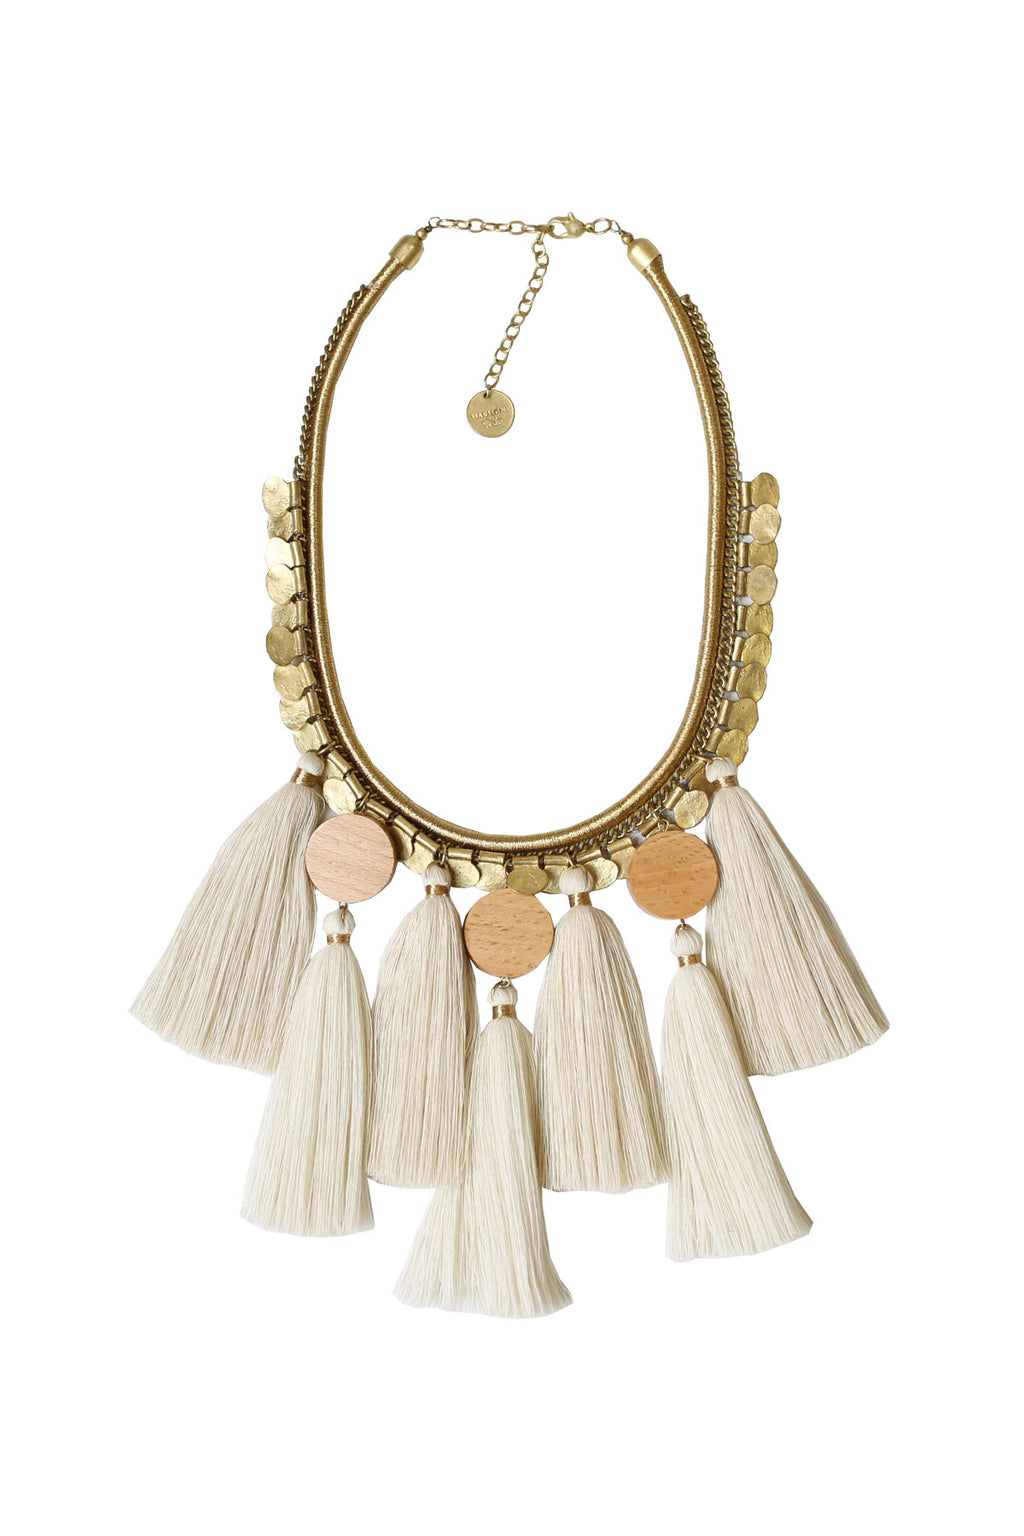 Timber & Tassel Necklace